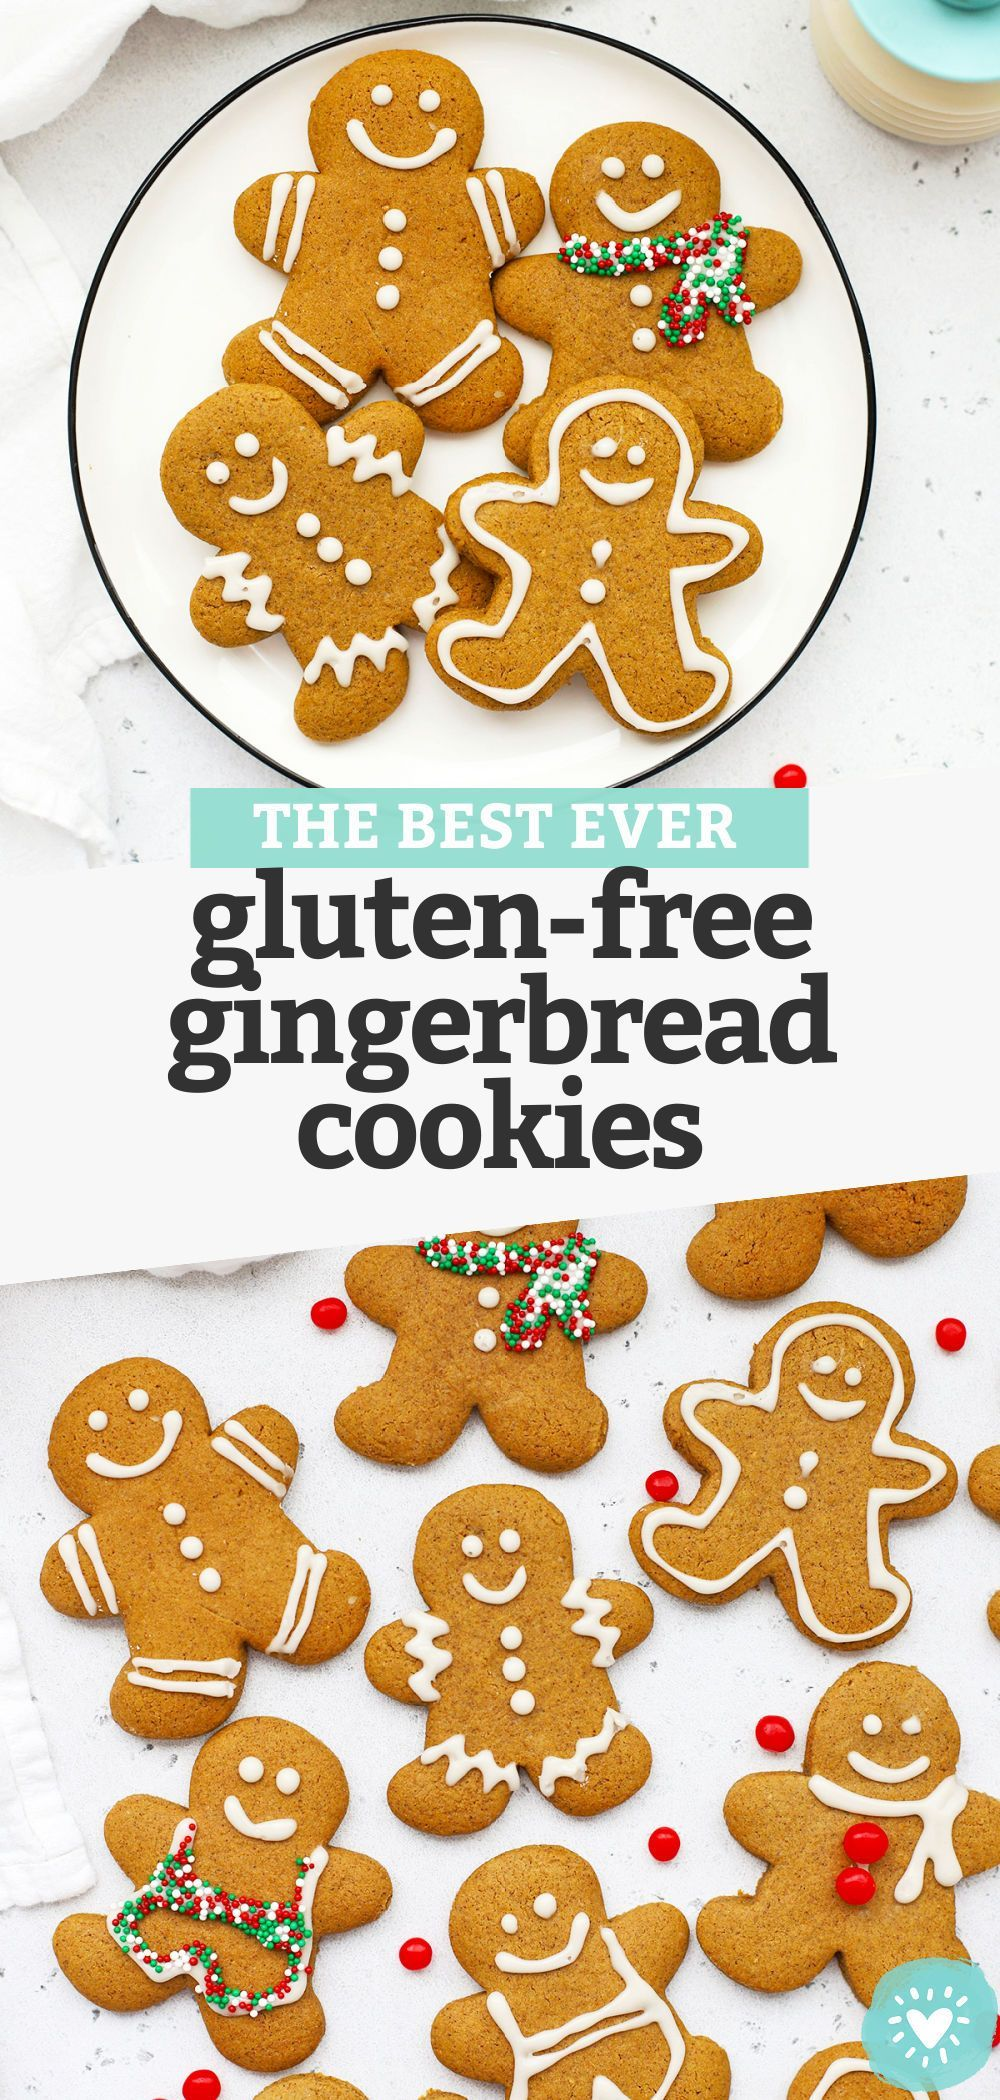 Gluten Free Gingerbread Cookies Recipe Gluten Free Gingerbread Cookies Gingerbread Cookies Gluten Free Gingerbread